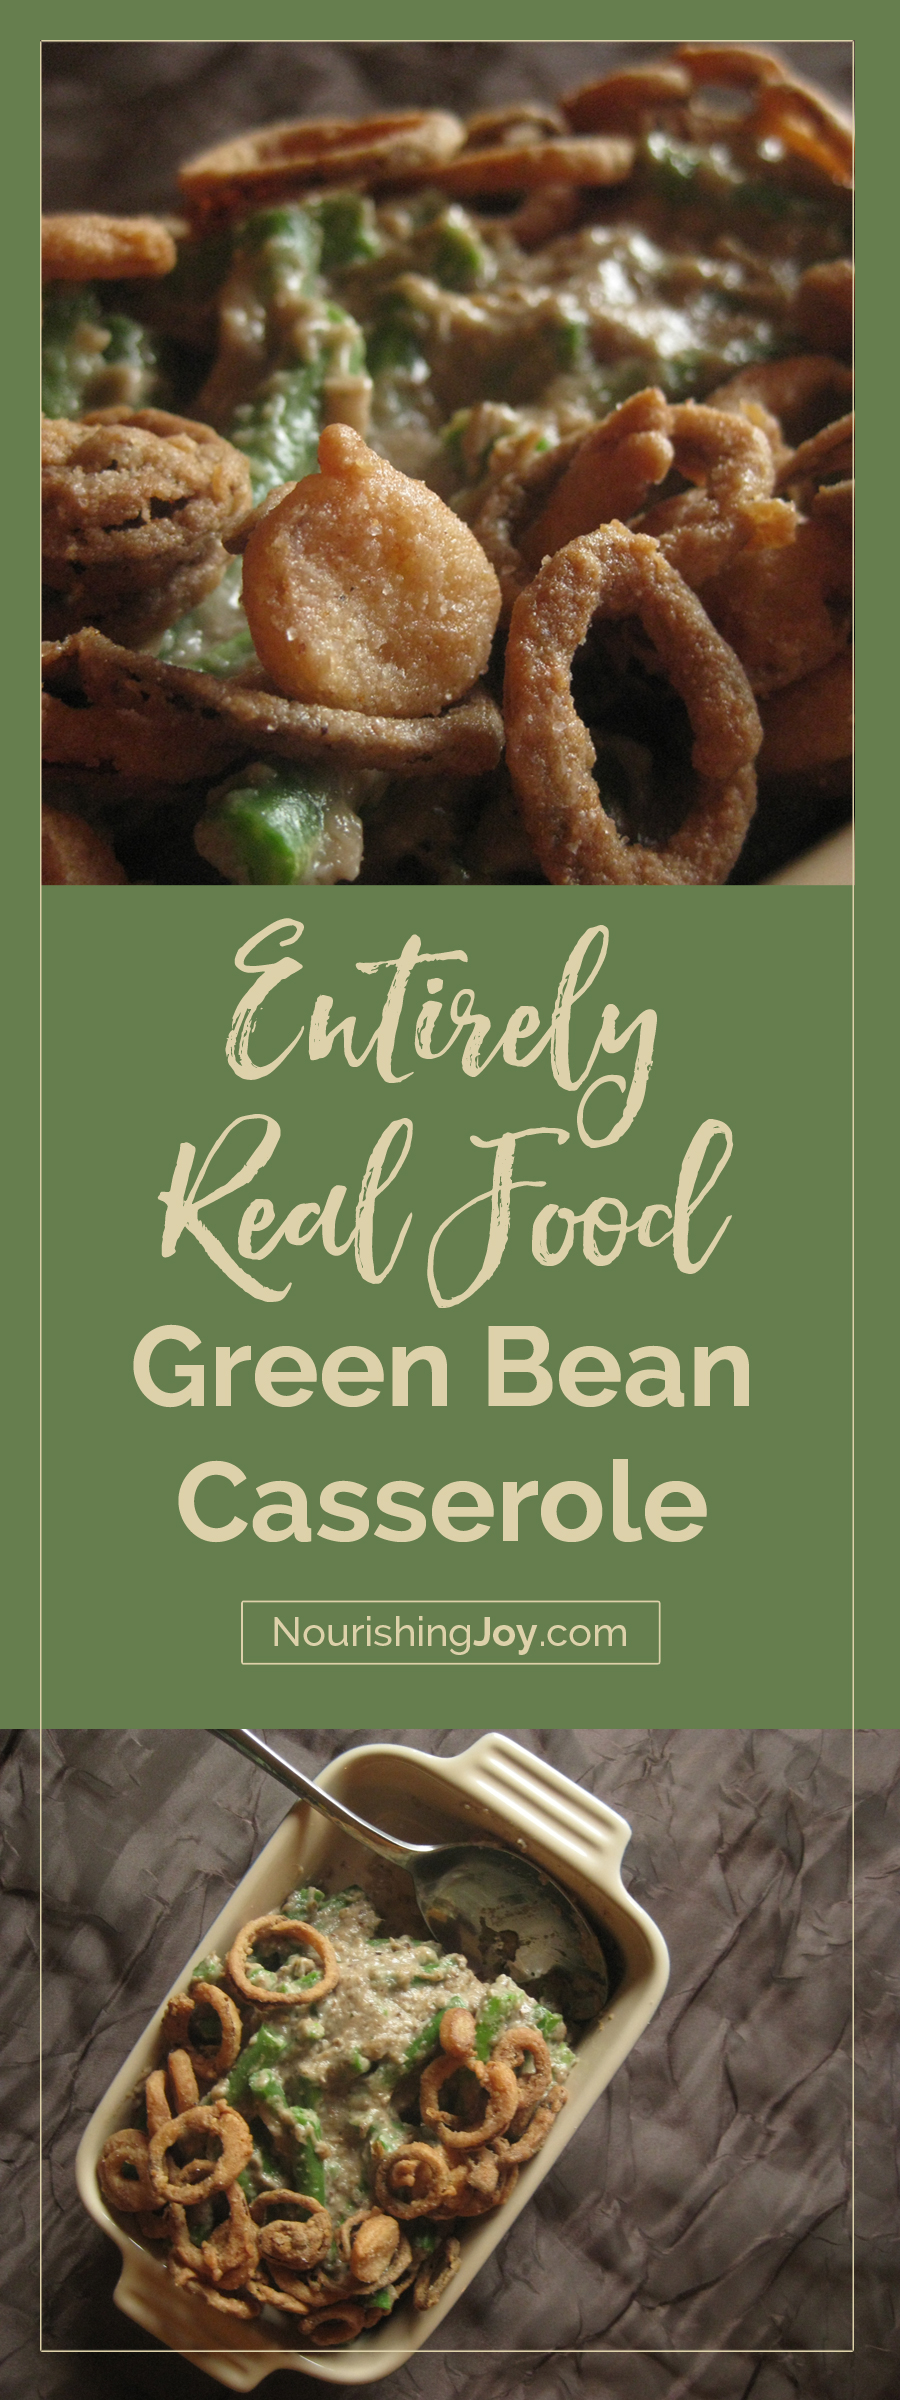 This real food green bean casserole is wholesome and delicious all the way so that whole food families can once again enjoy this holiday classic. The beauty of this time-tested recipe relies on simple, homemade ingredients that taste EXACTLY like the classic - only fresher and tastier. :)